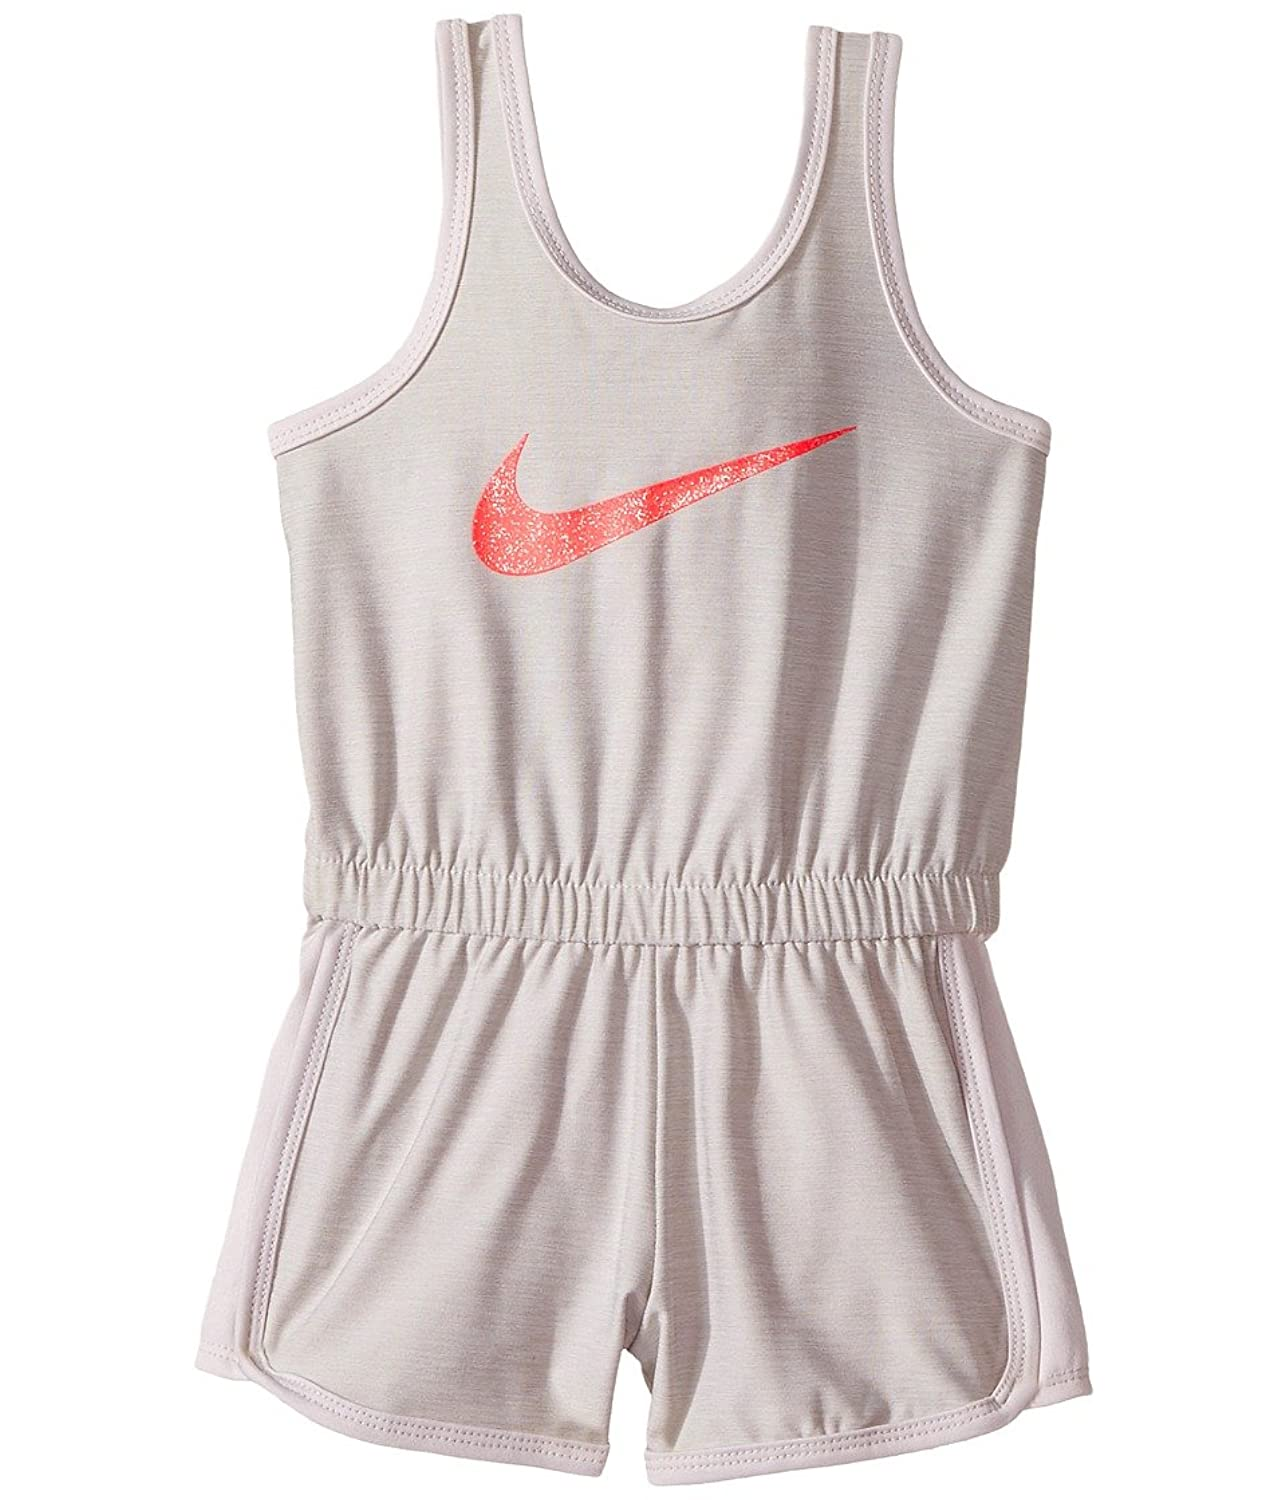 Nike Kids Dri-Fit Sport Essentials Romper Toddler White Girls Jumpsuit Rompers One Piece